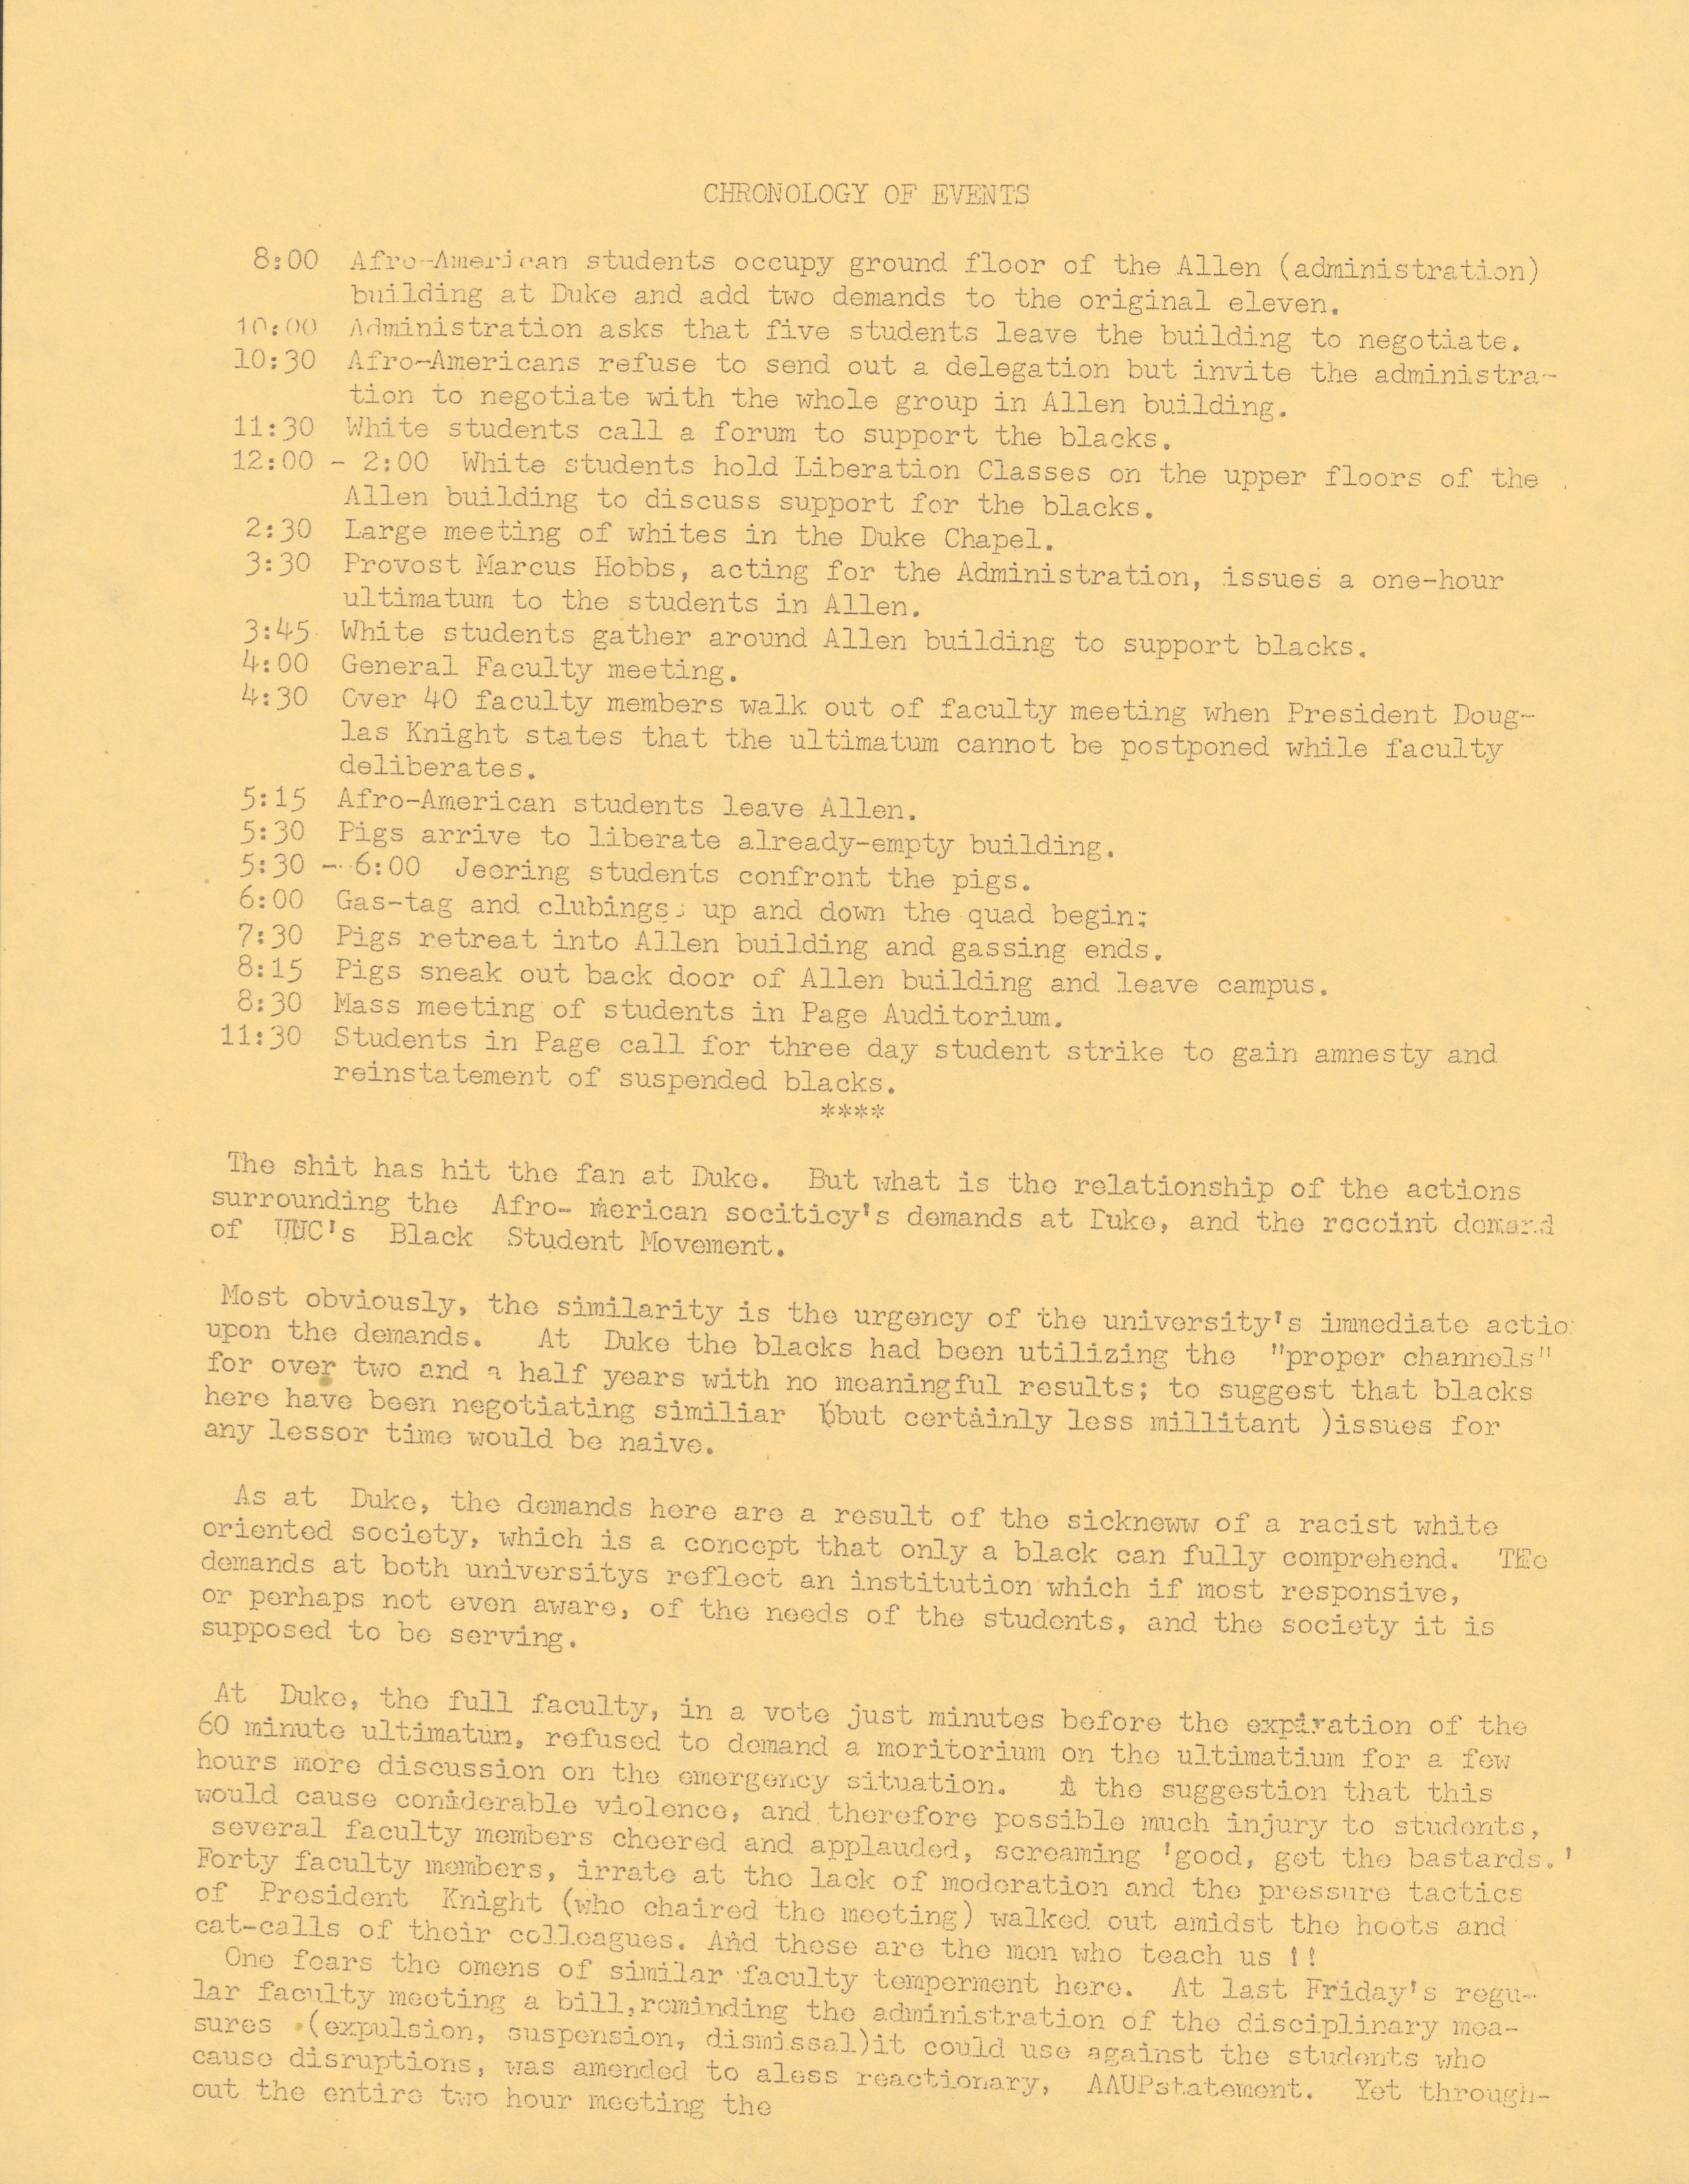 Document showing the events of the Allen Building Takeover on the 13th February 1969.